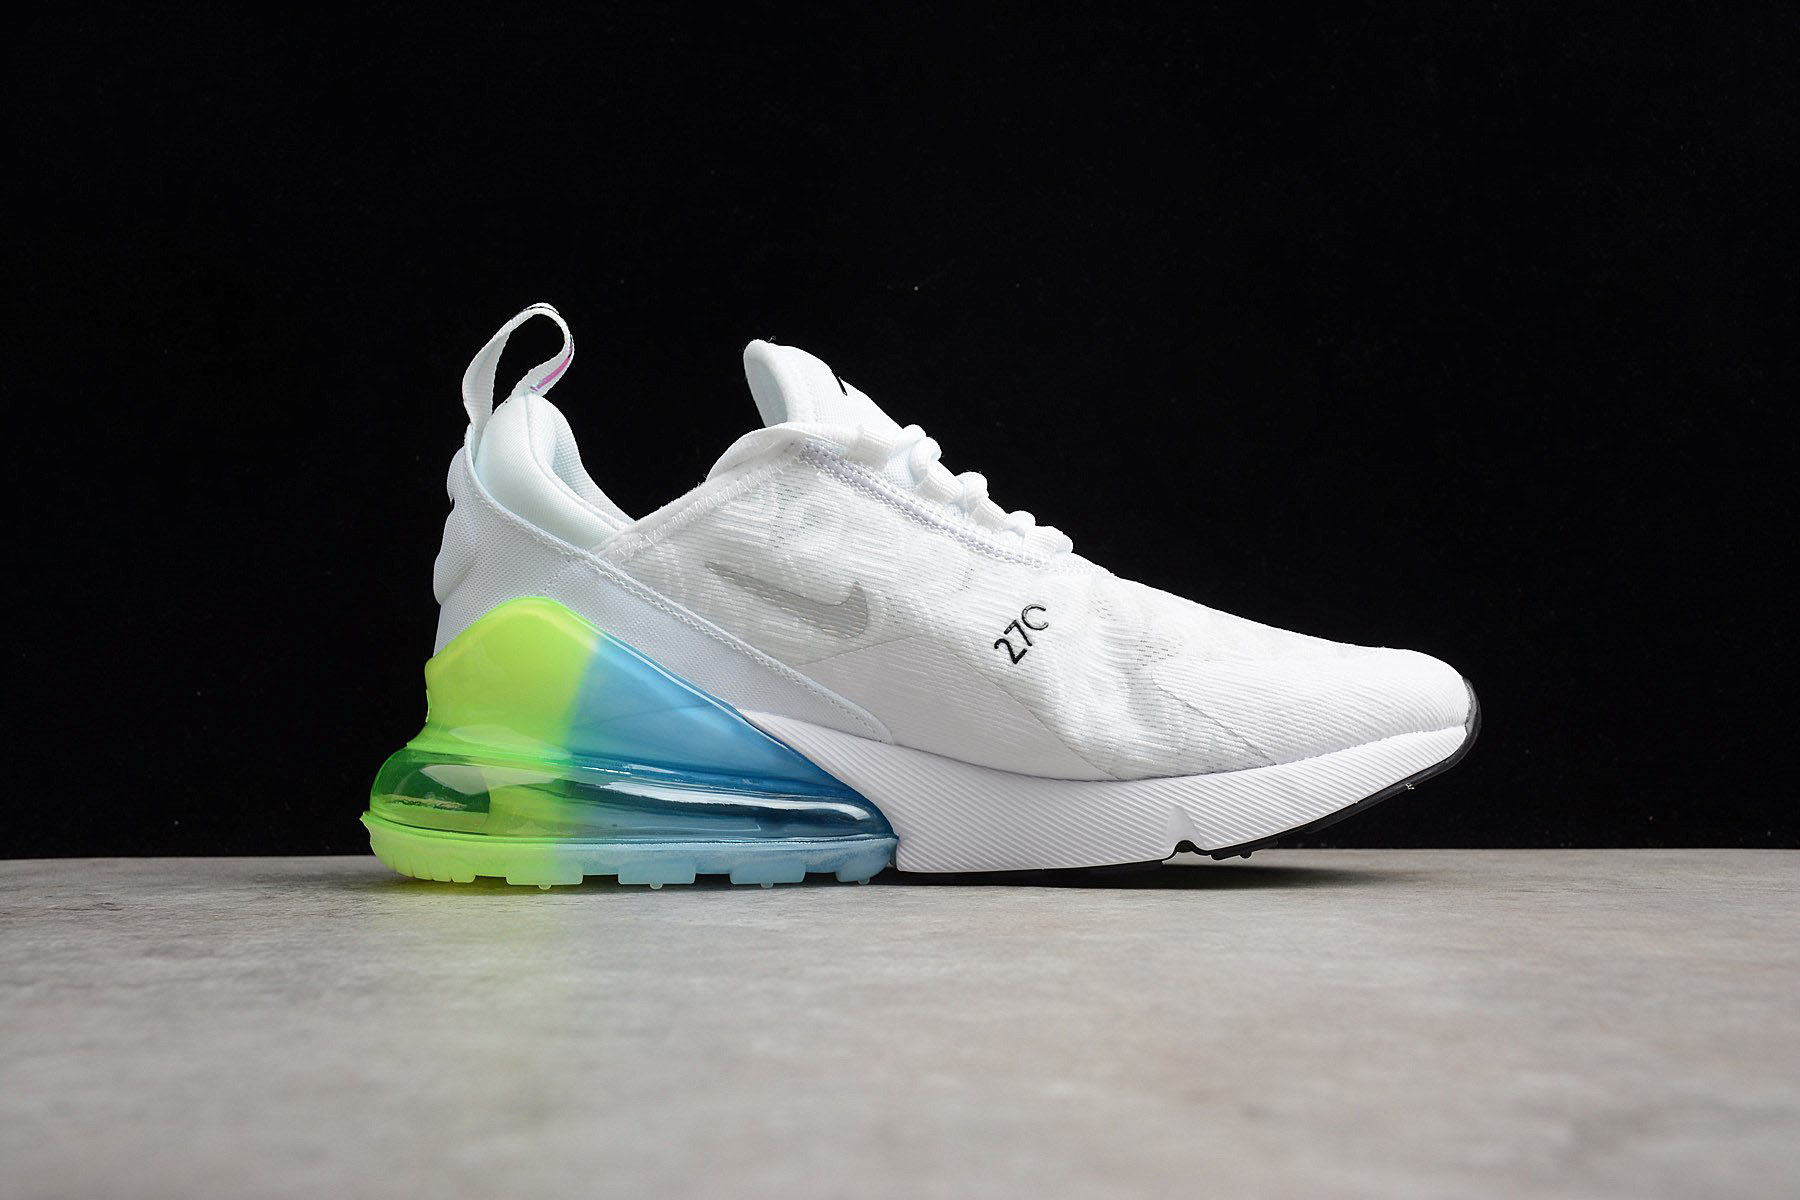 Nike Air Max 270 SE WhiteExplosion Green Yellow AQ9164 100